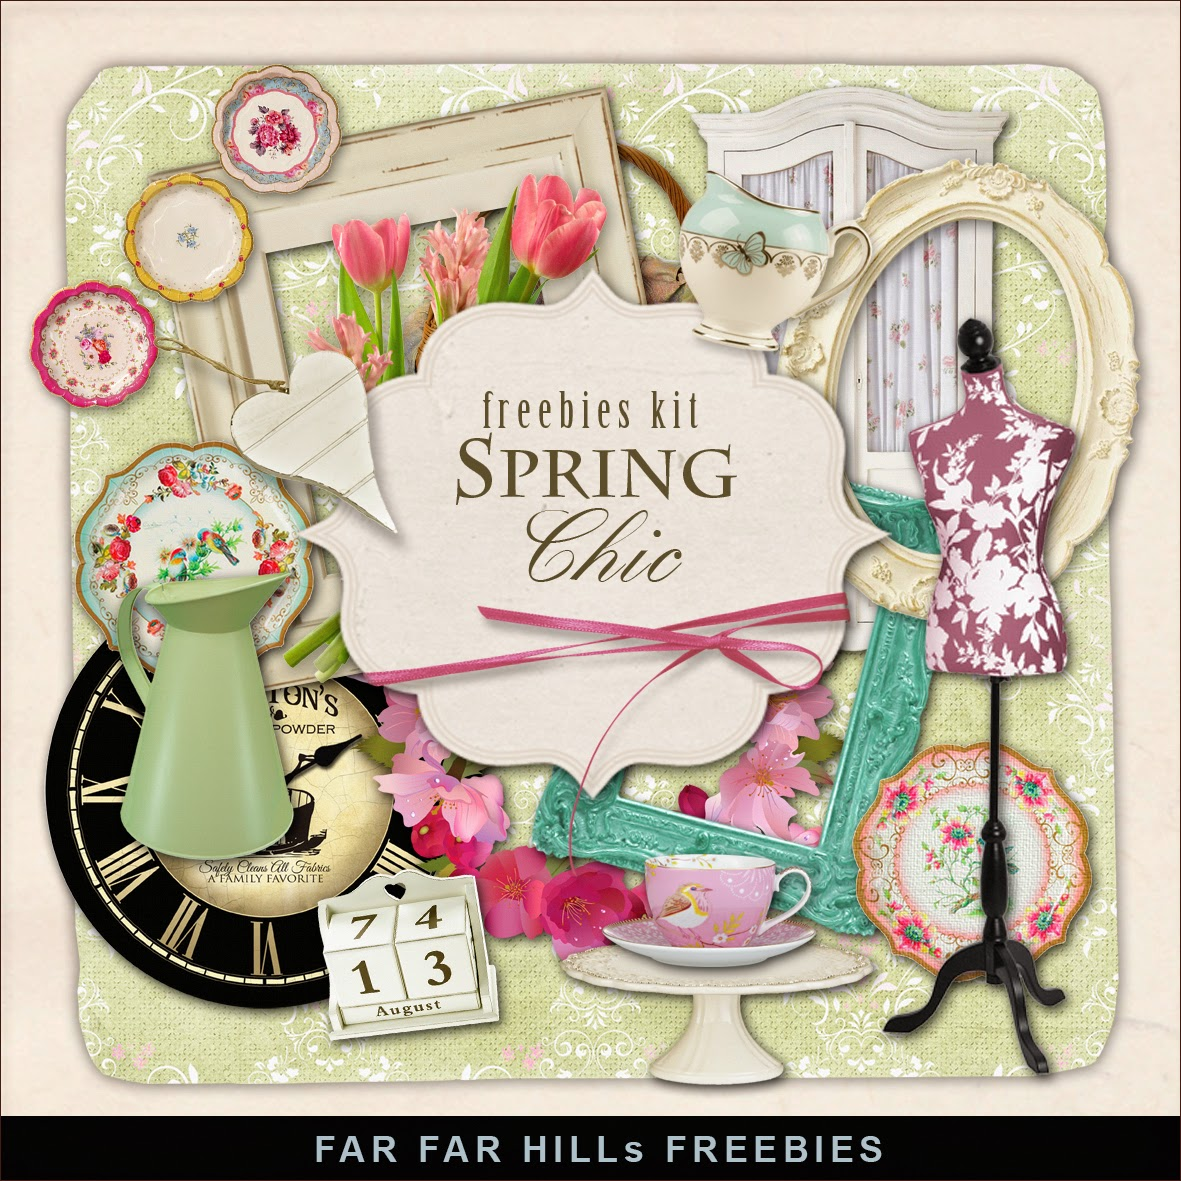 Freebies Kit - Spring Chic